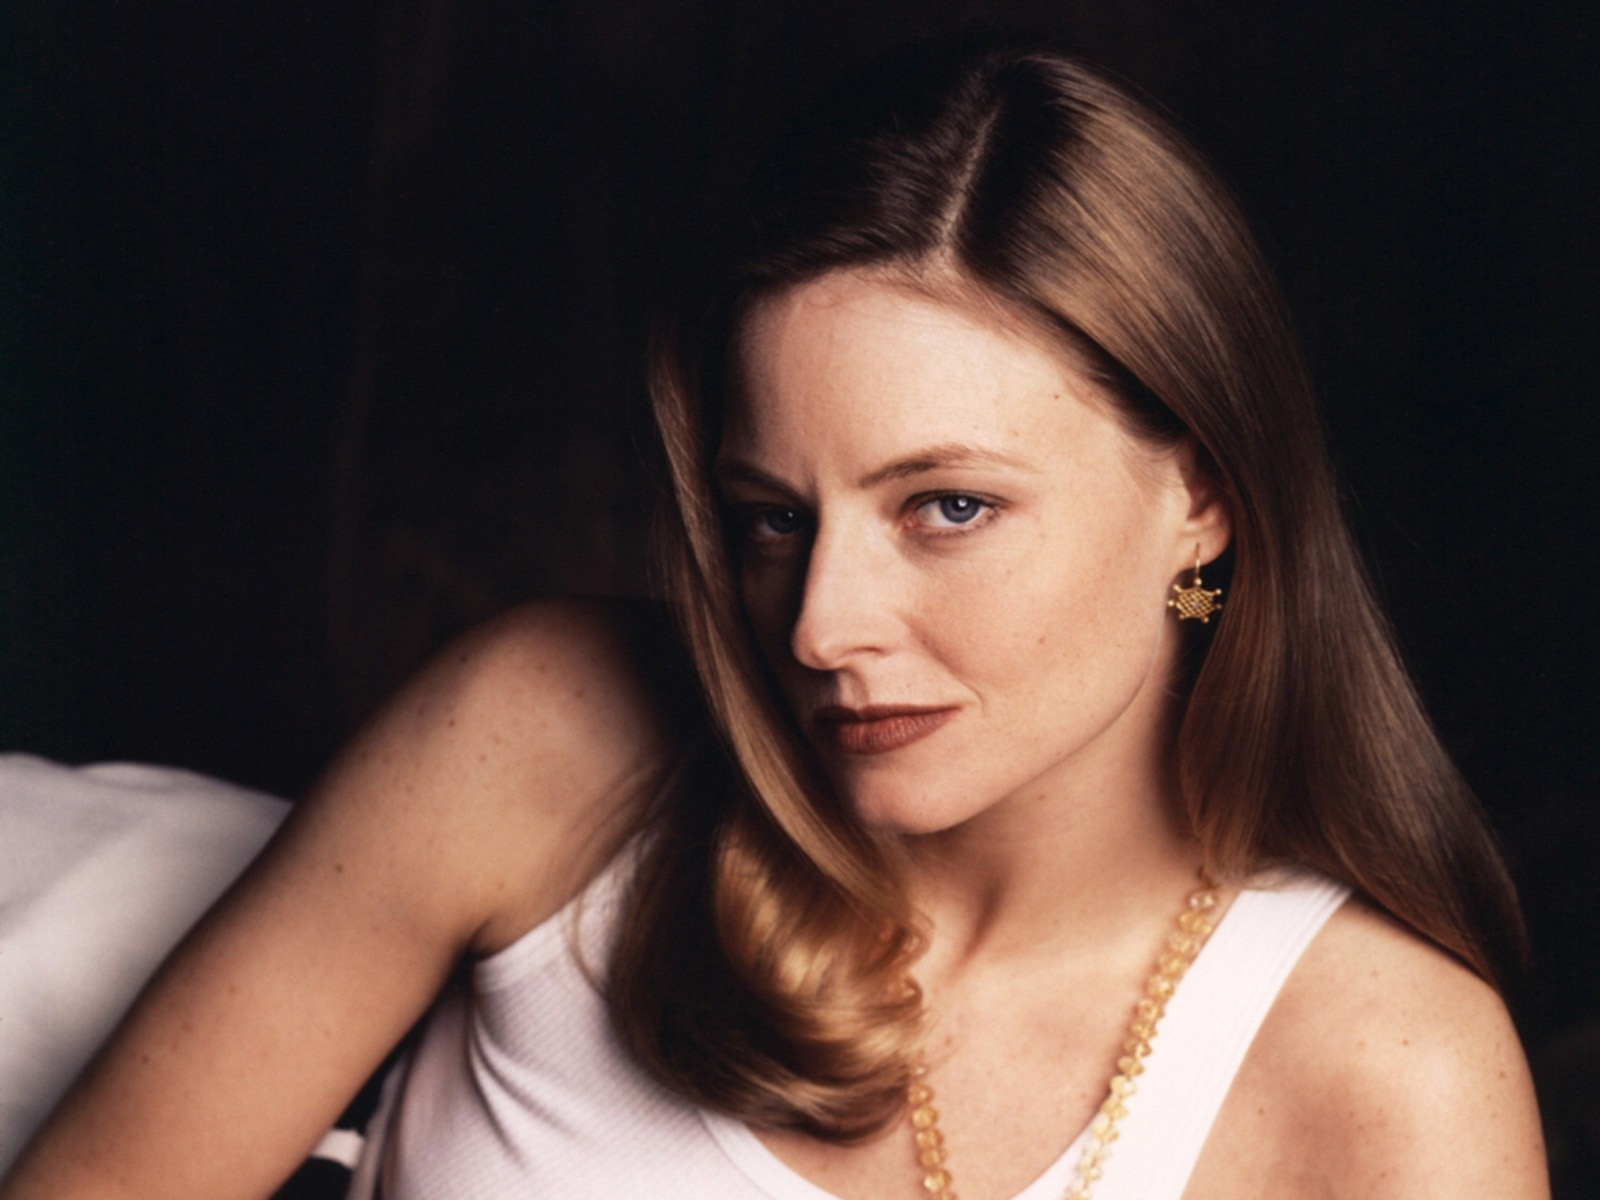 1600x1200 - Jodie Foster Wallpapers 19